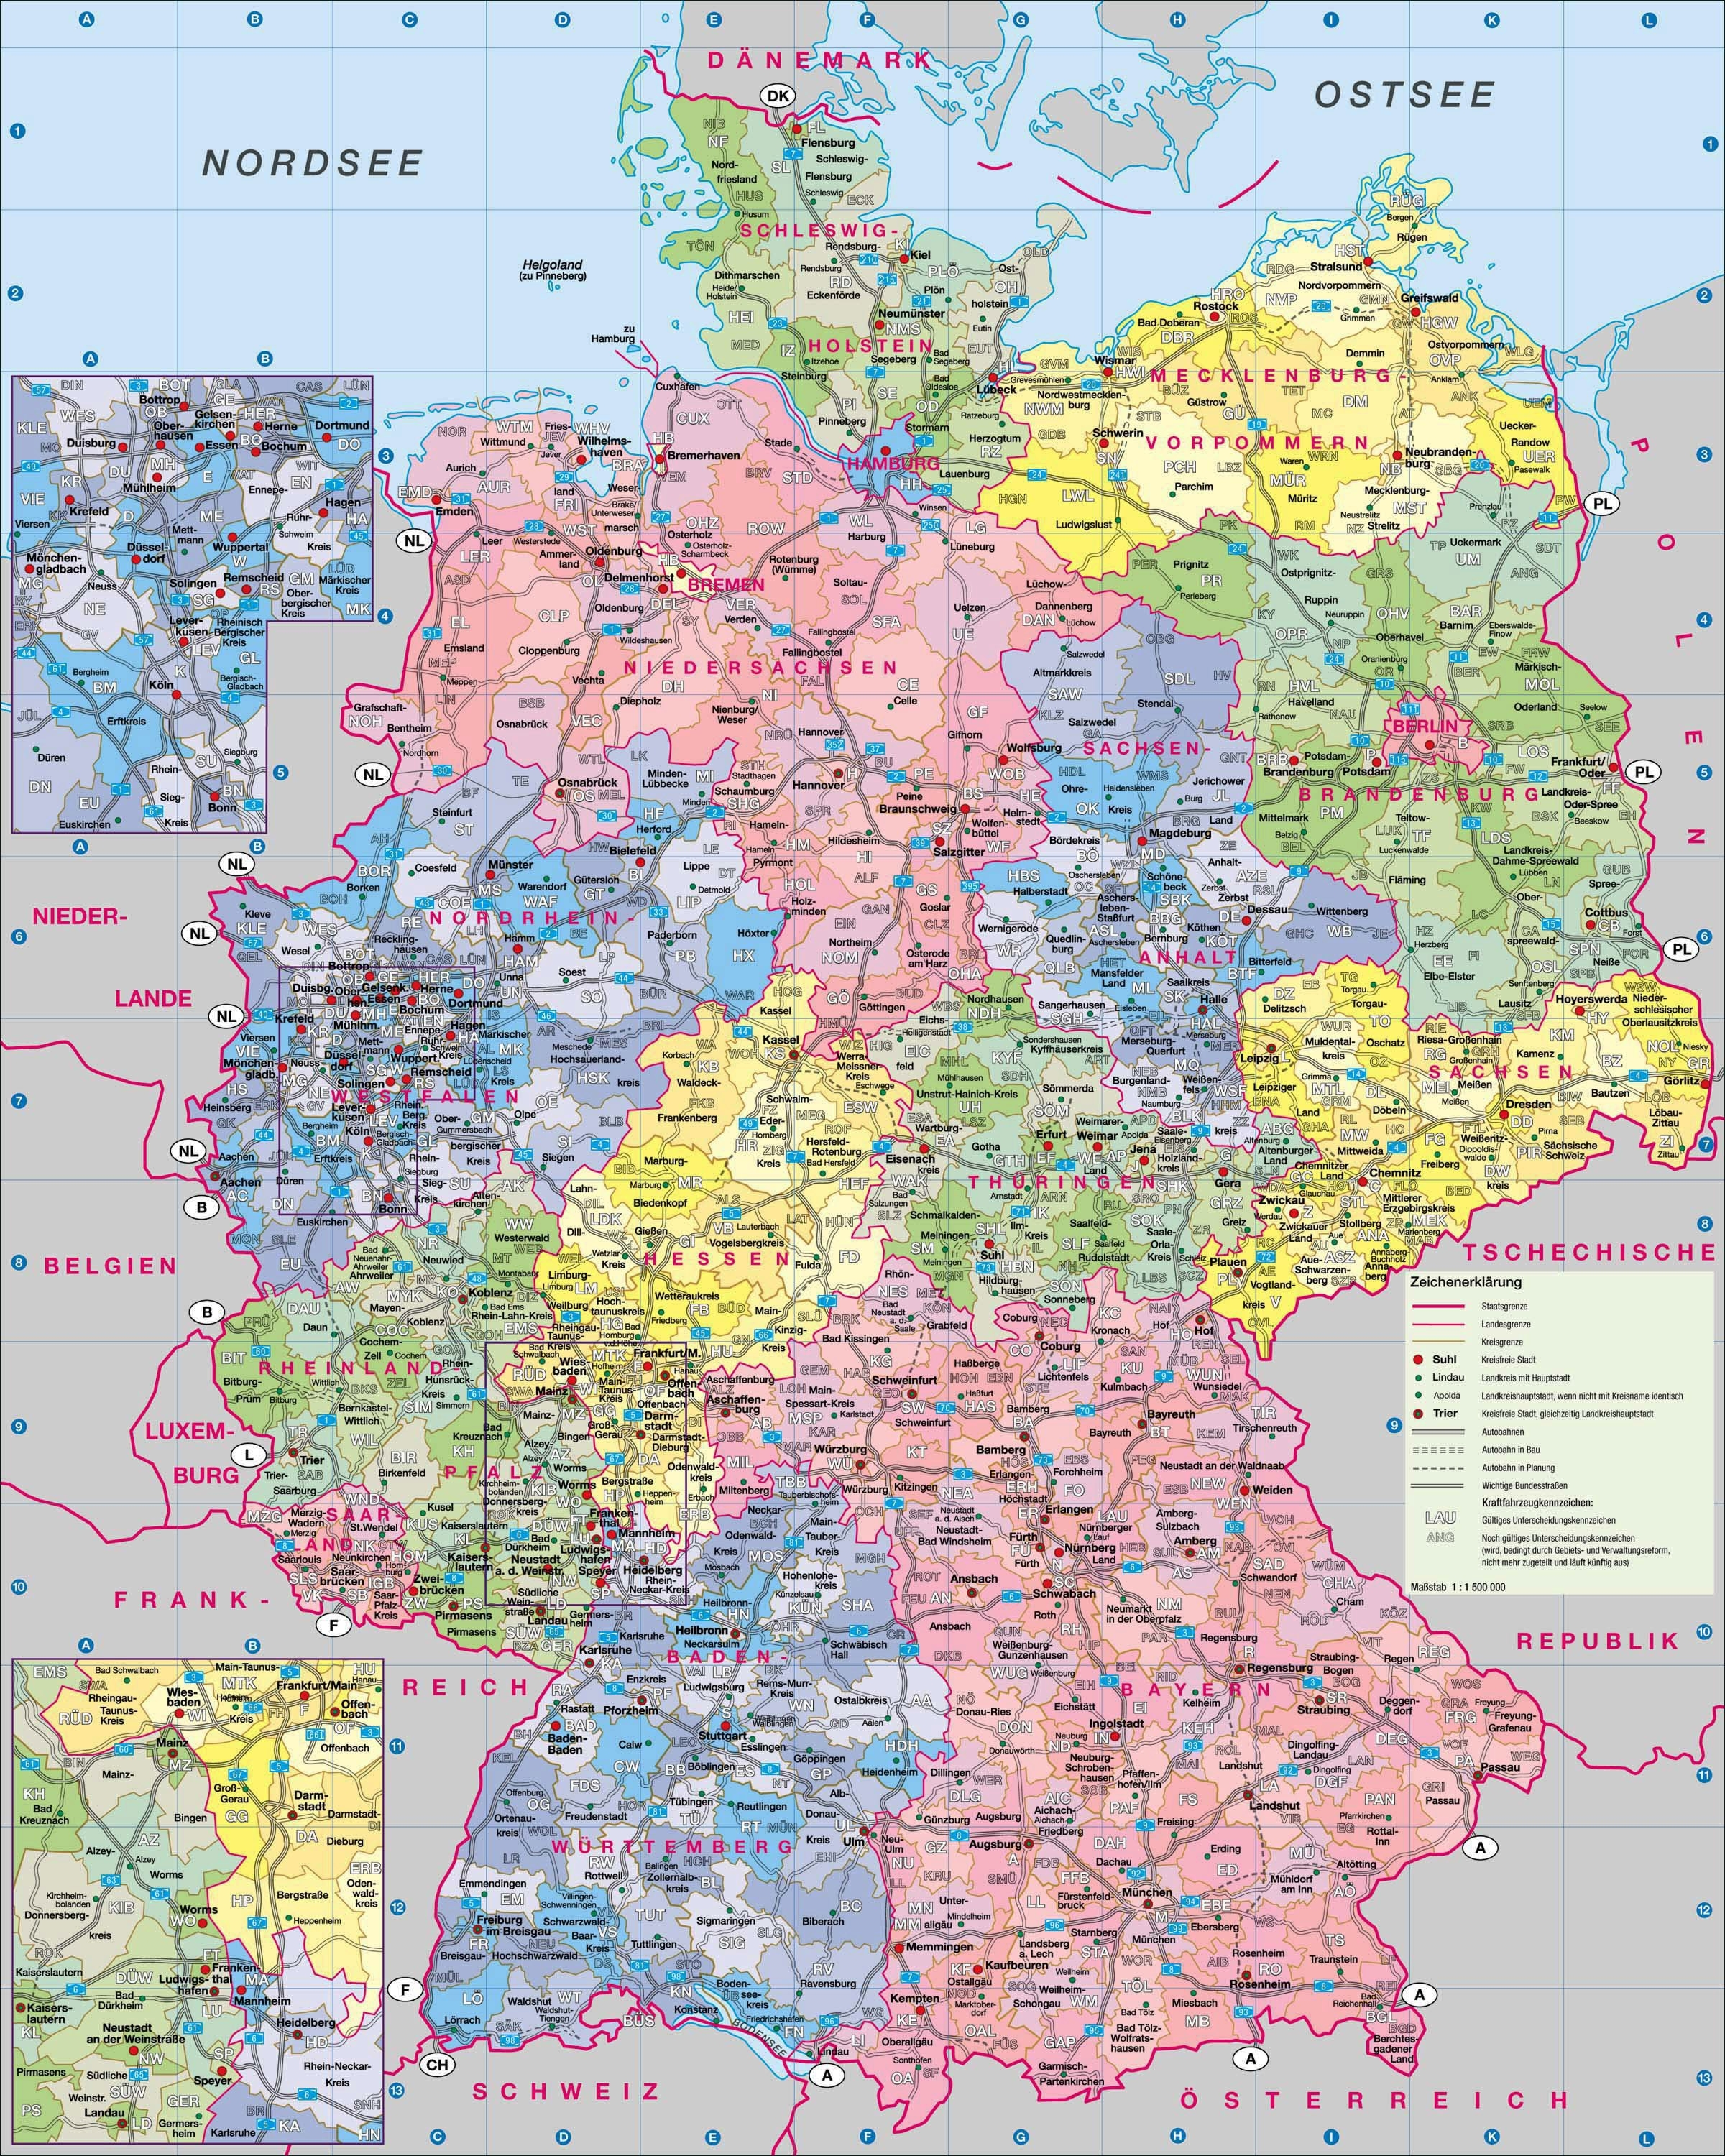 Maps Of Germany   Detailed Map Of Germany In English   Tourist Map with regard to Free Map Of Germany With Cities And Towns